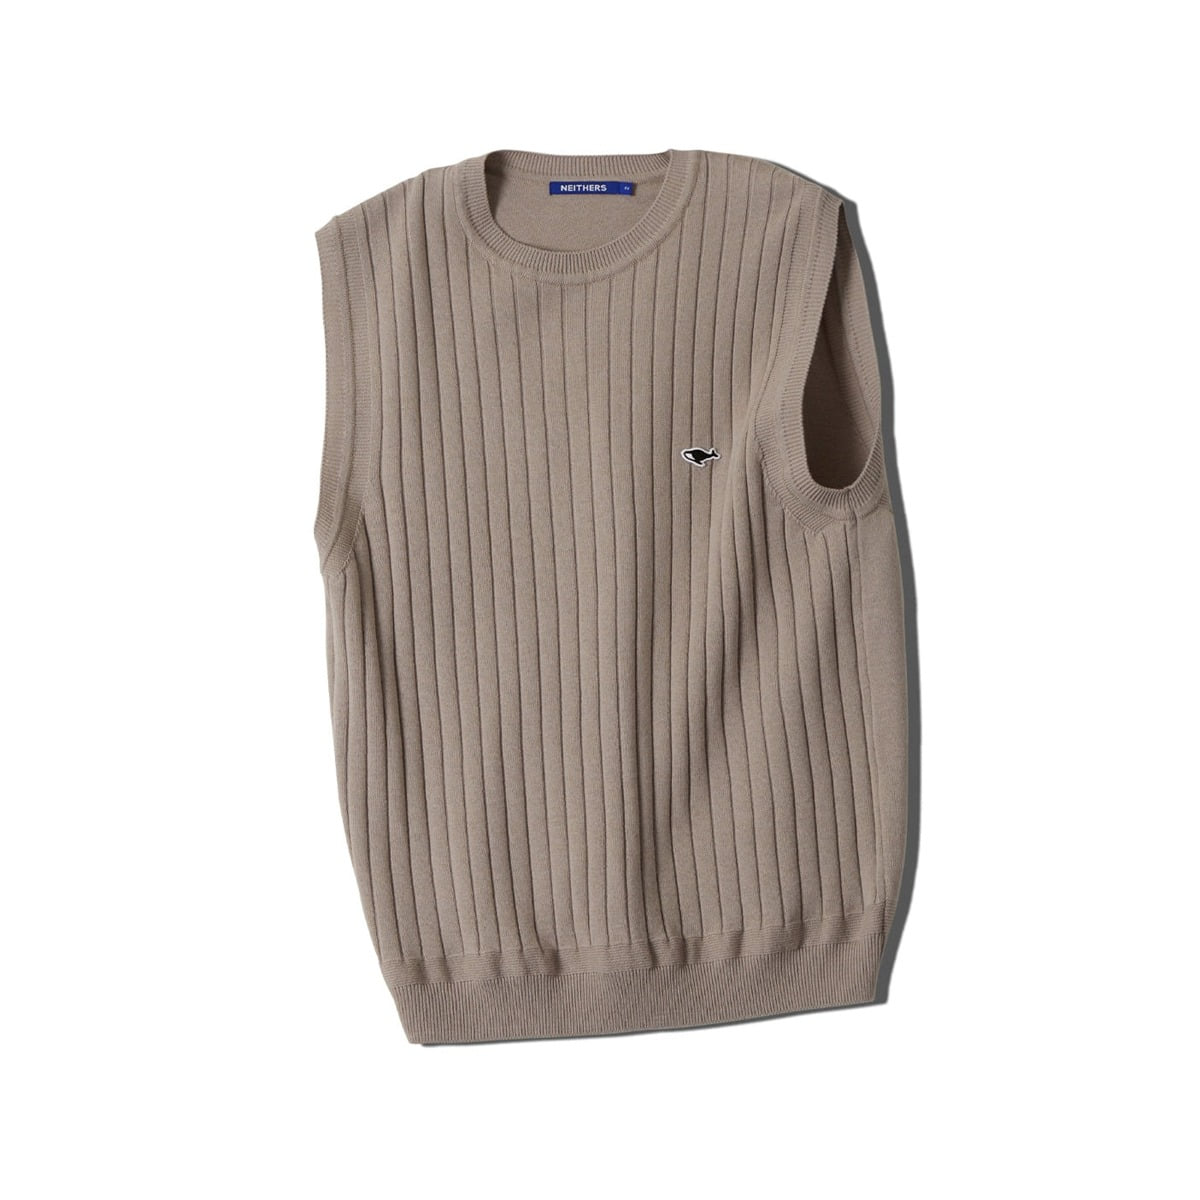 [NEITHERS] KNITTED VEST 'BEIGE'